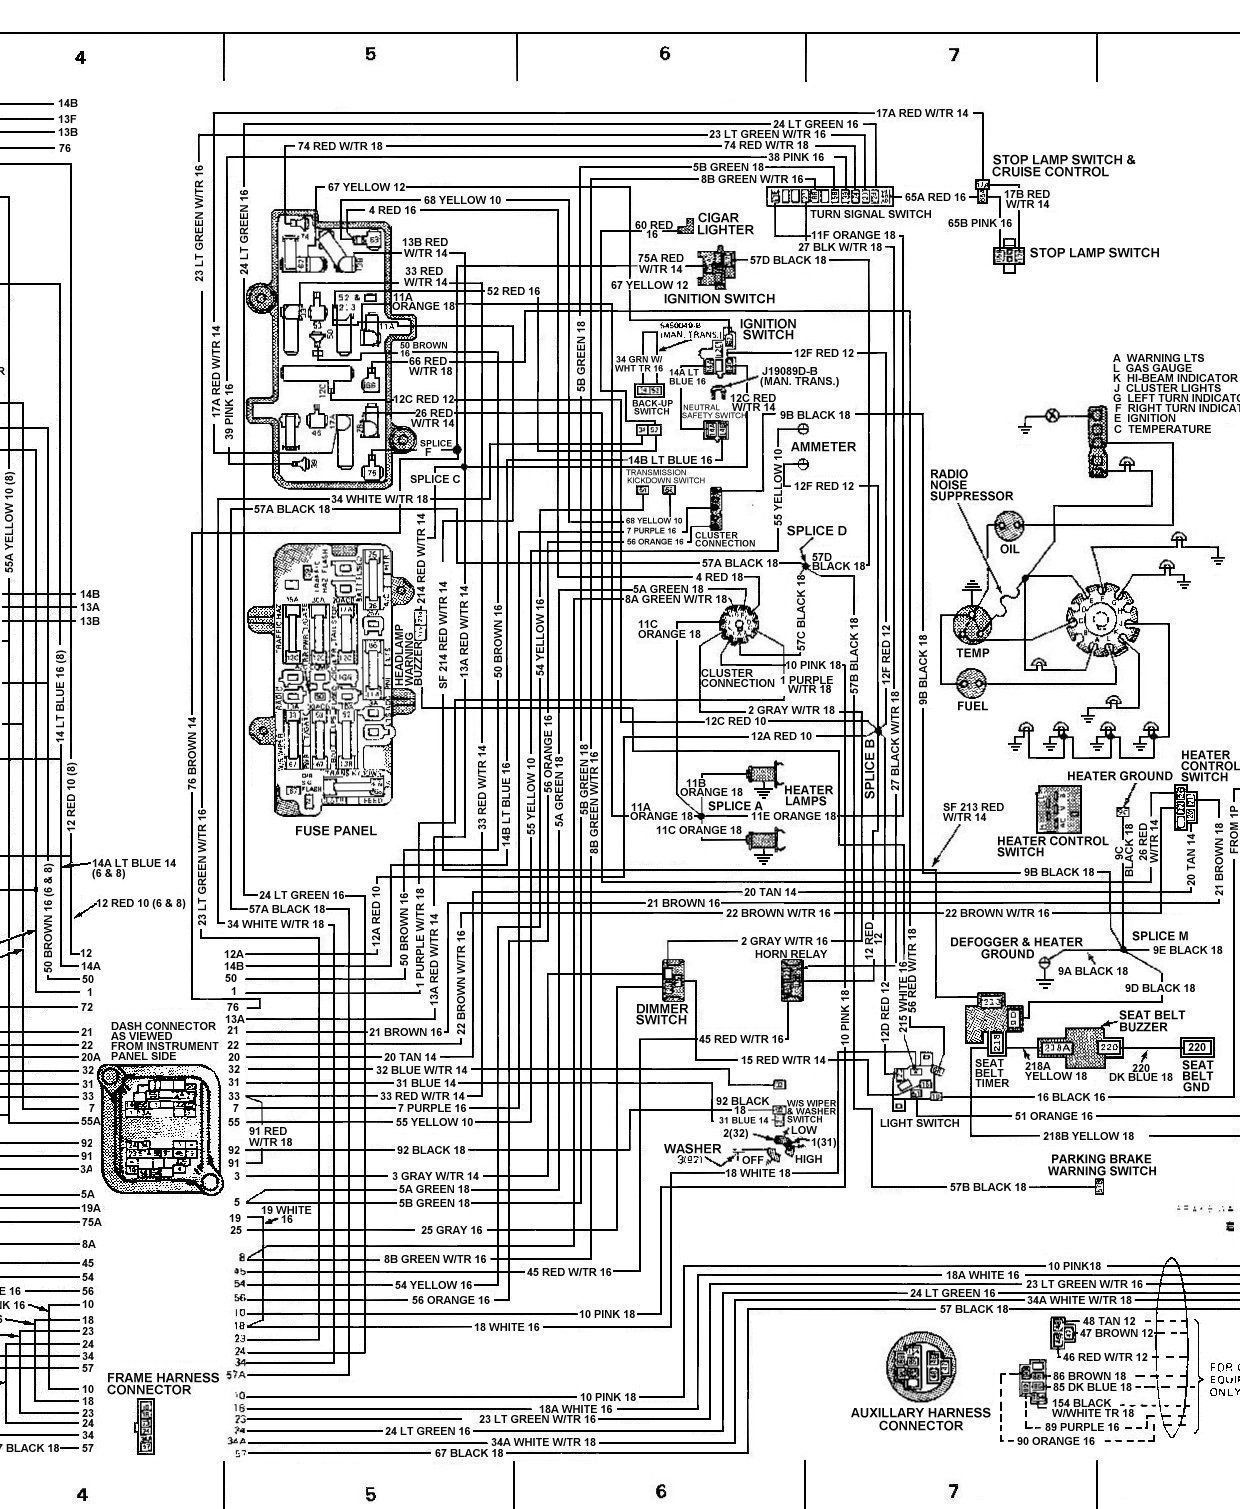 232951 Ebooks Automotive Vw Jetta Wiring Diagram 2 8 1998 on toyota camry radio wiring diagram for 1991